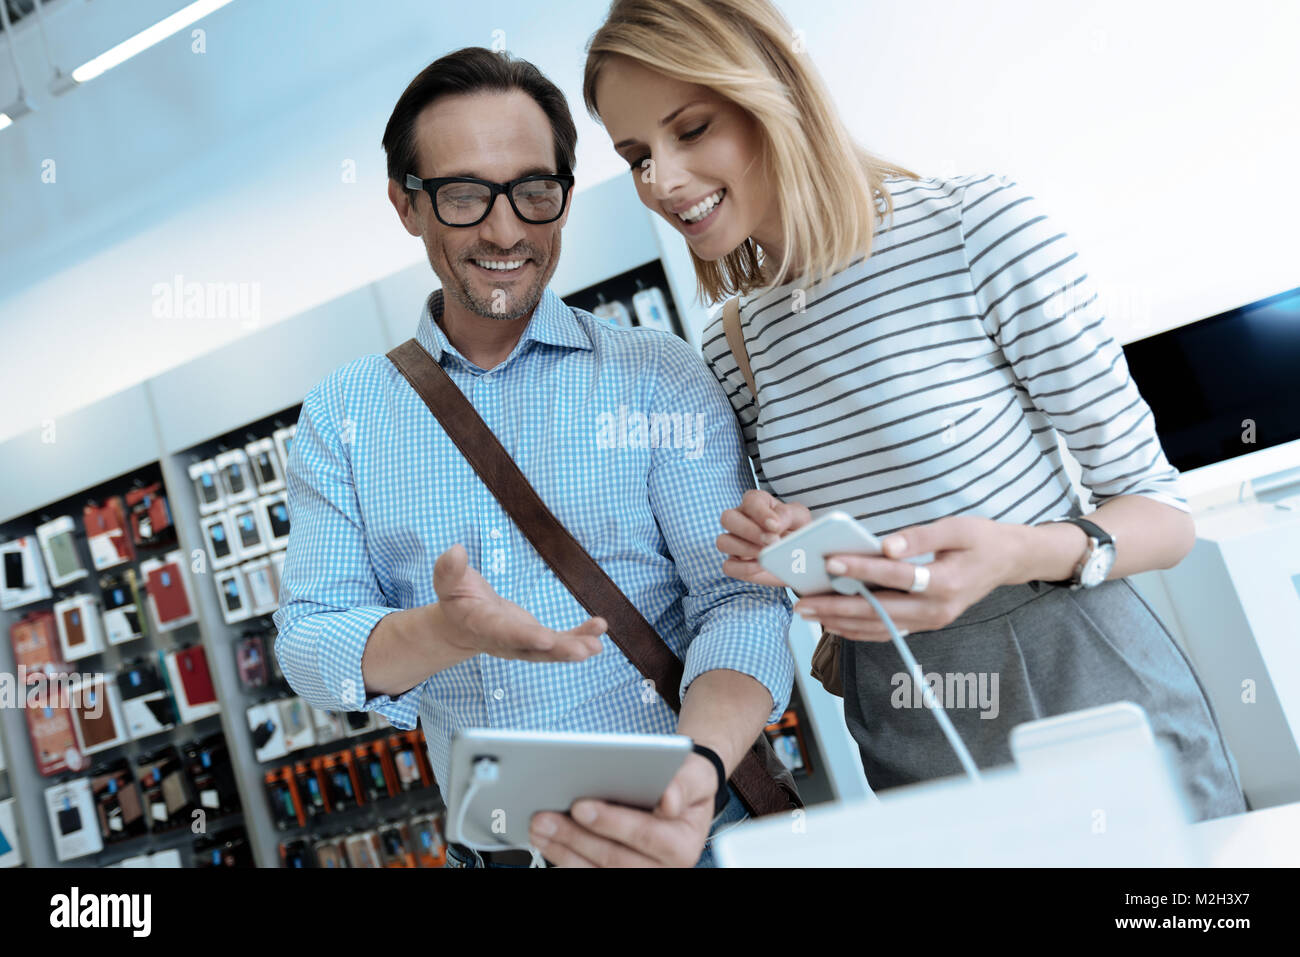 Attentive blonde female listening to her partner - Stock Image